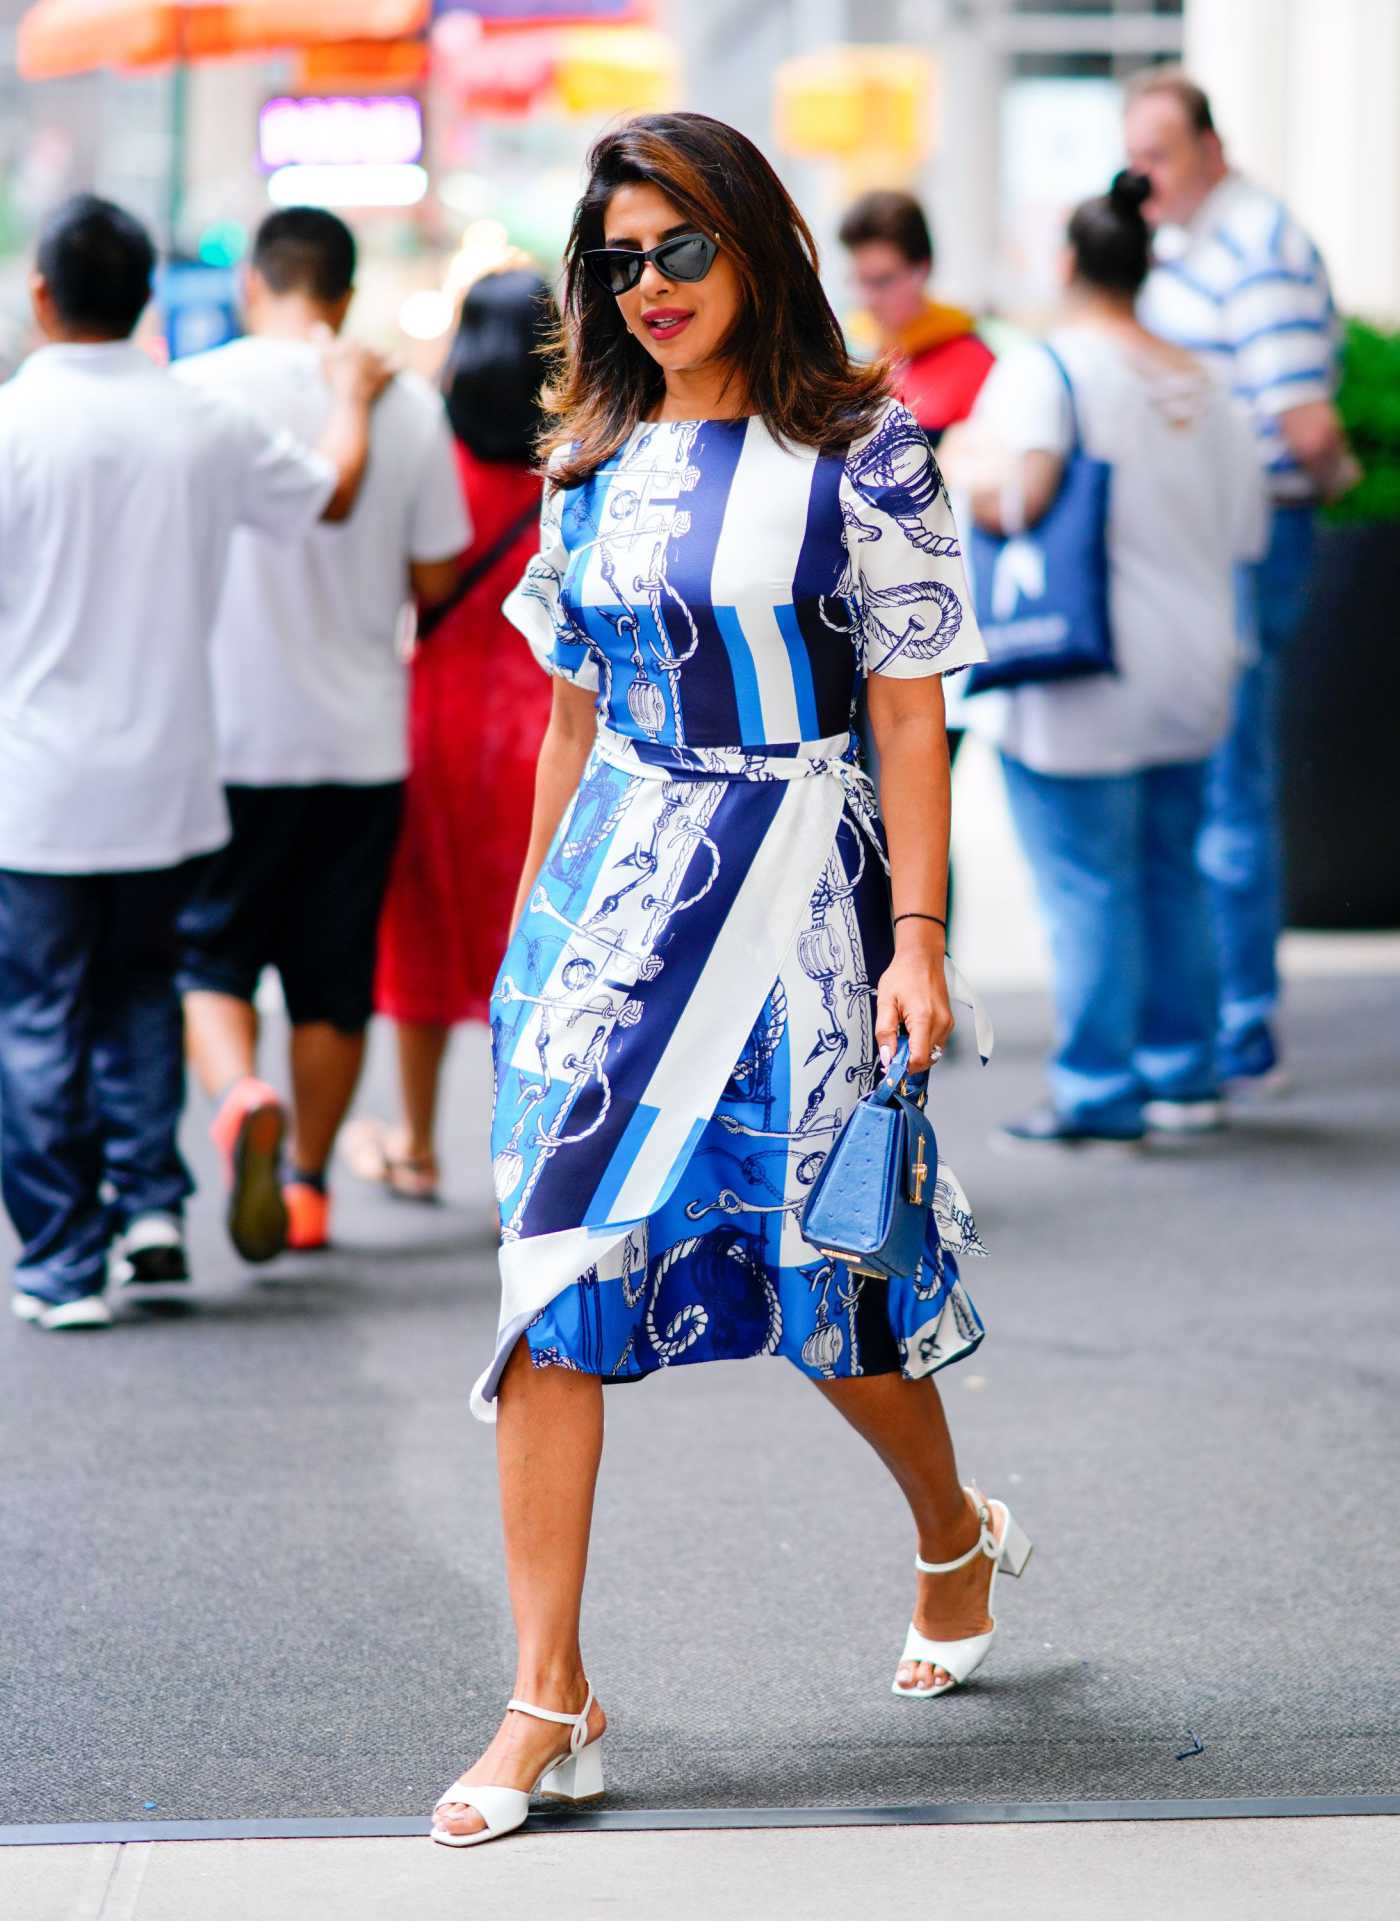 Priyanka Chopra in a Blue and White Dress Was Seen Out in NY 07/23/2019